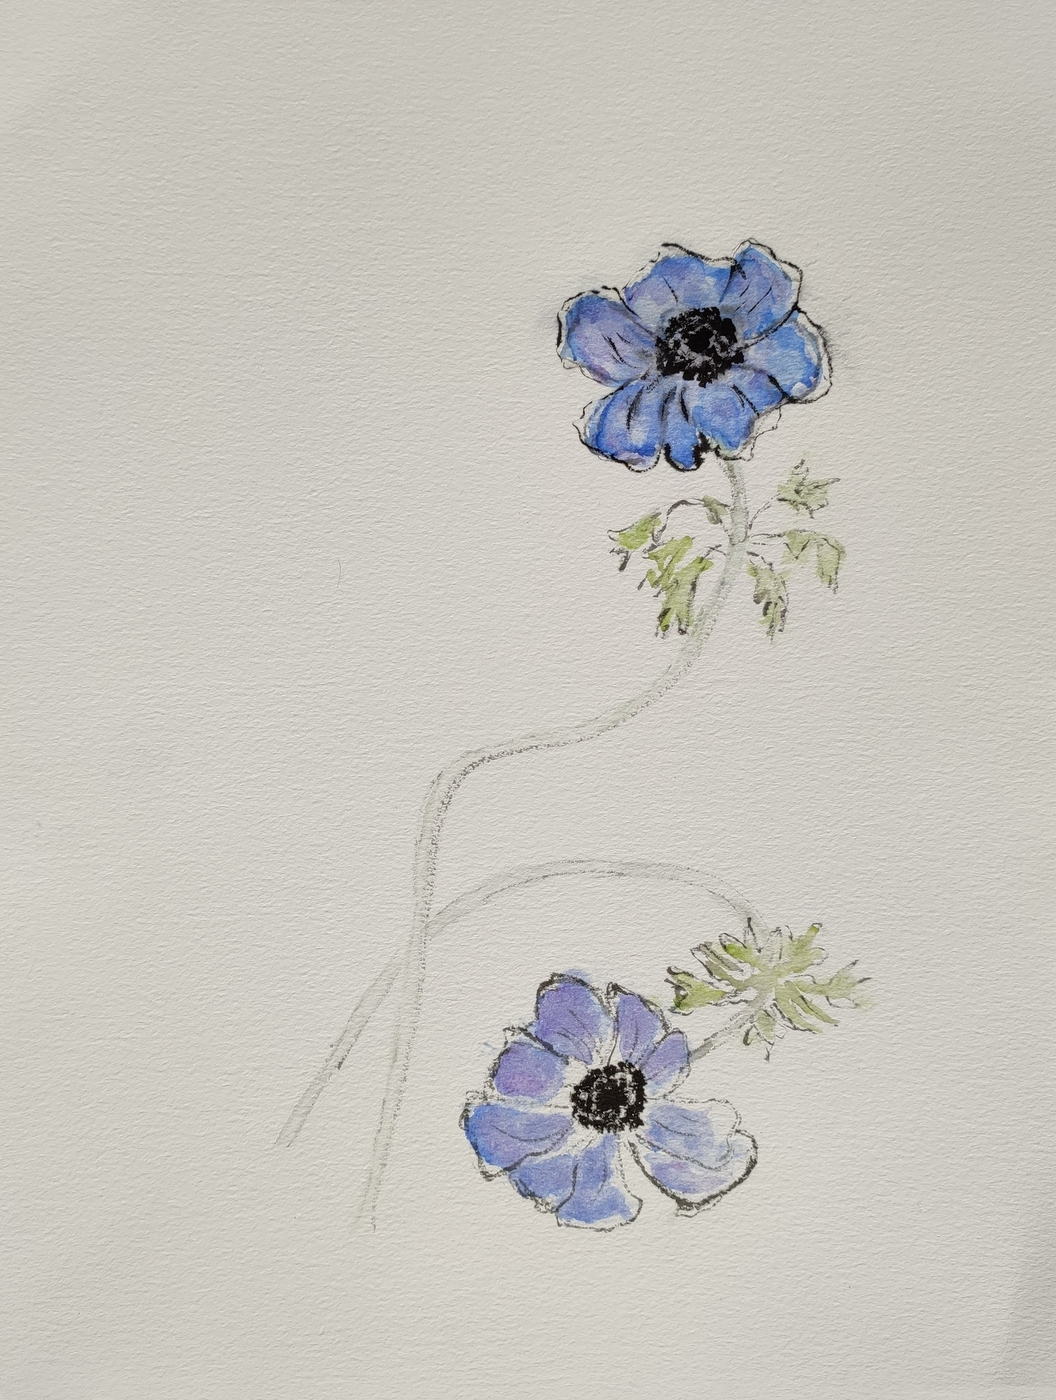 Anemonen 2020 Ink and Watercolour on Paper © Christiane Weismüller